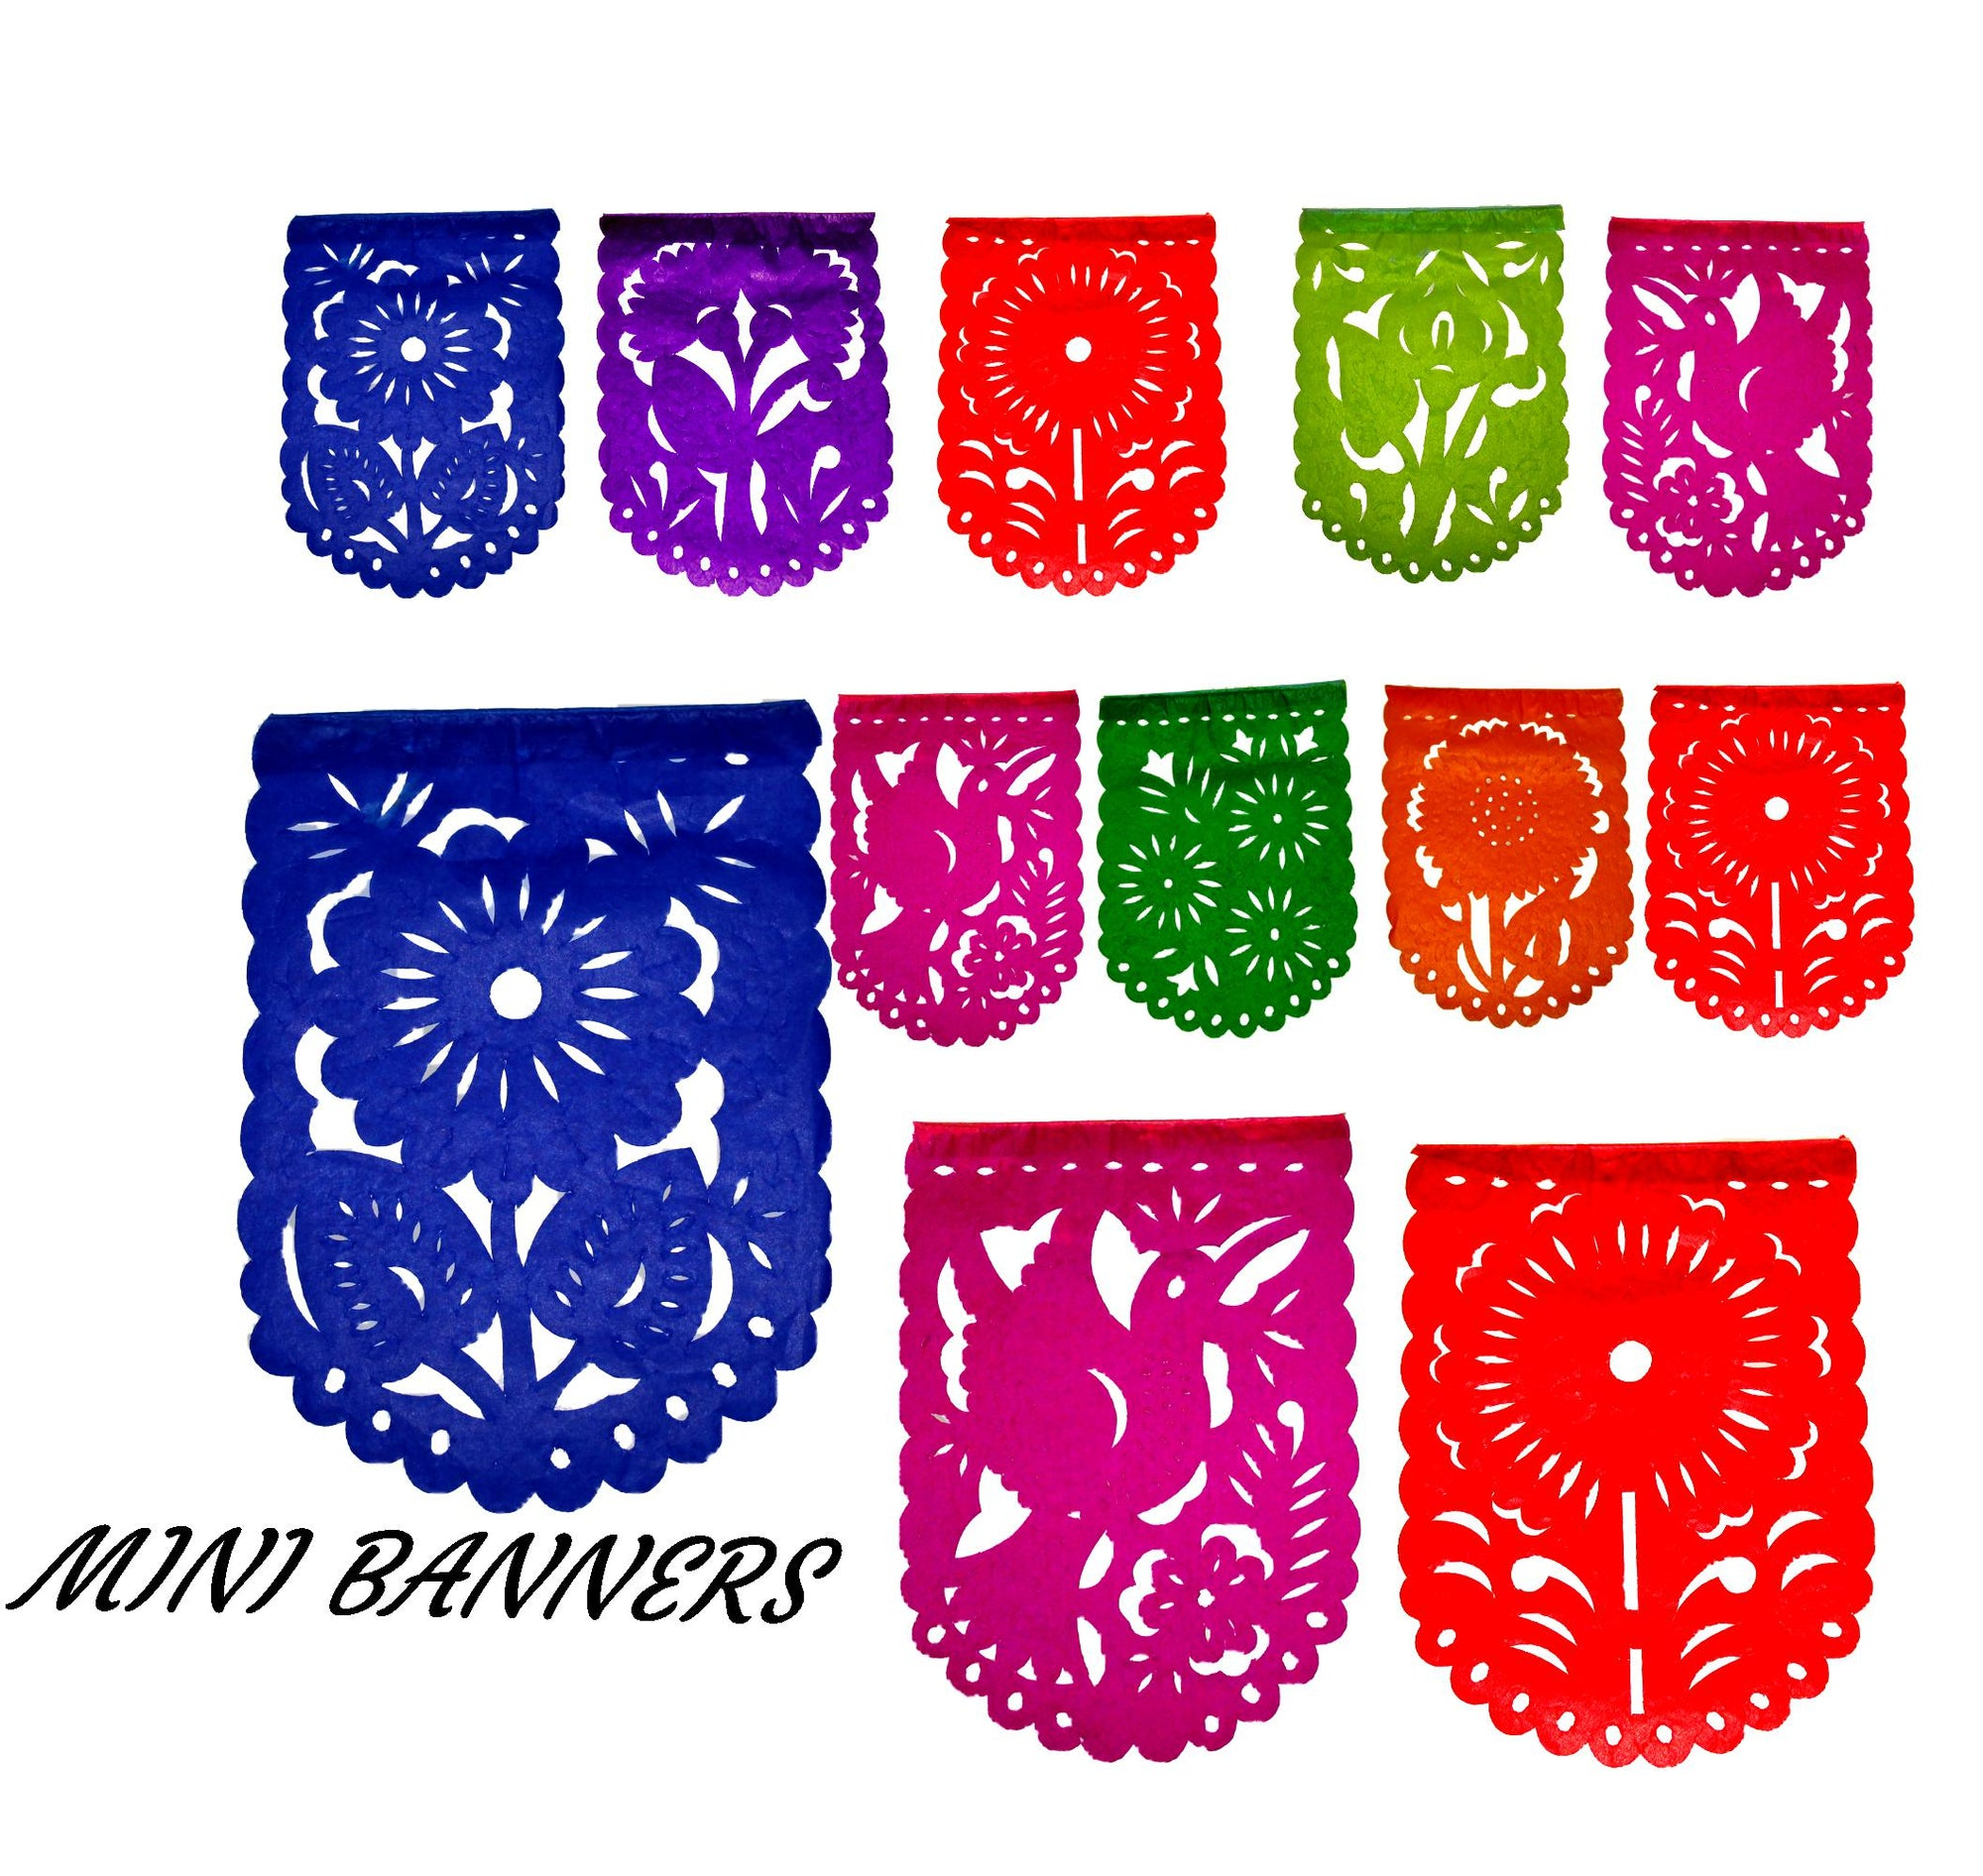 5 Pack Mini Papel picado banners, 25 Feet long MINI47